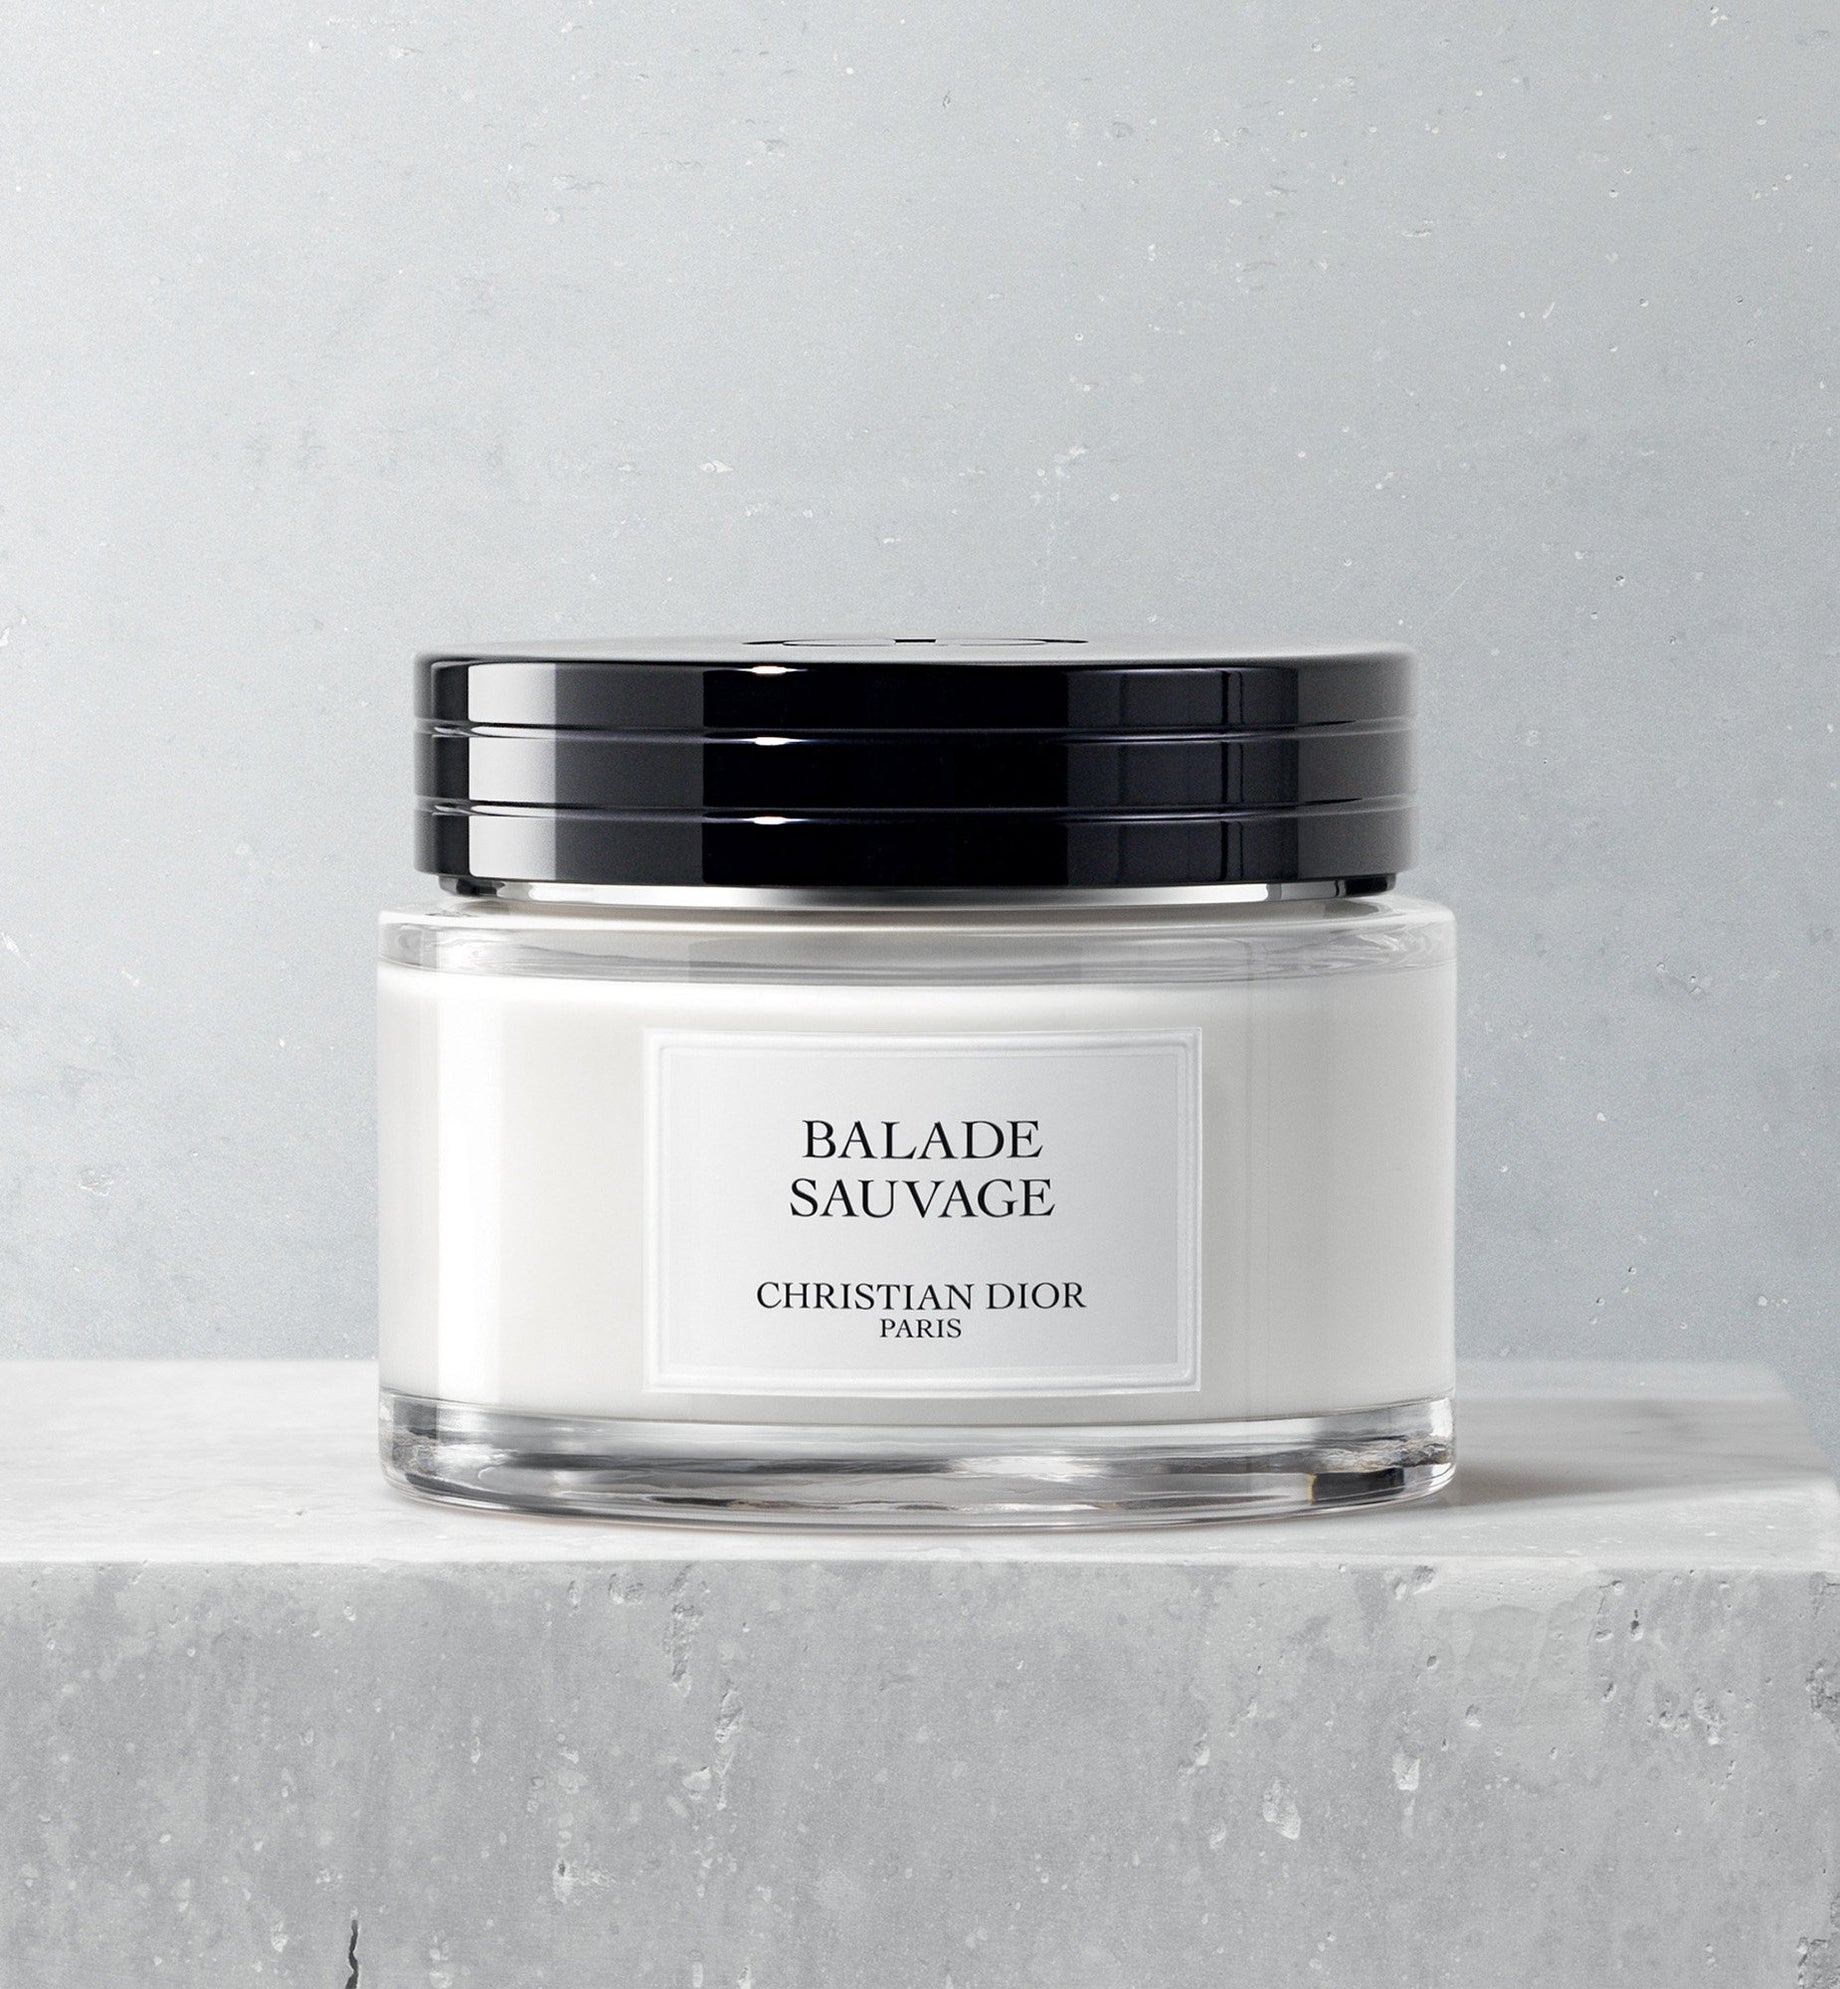 BALADE SAUVAGE BODY CREAM